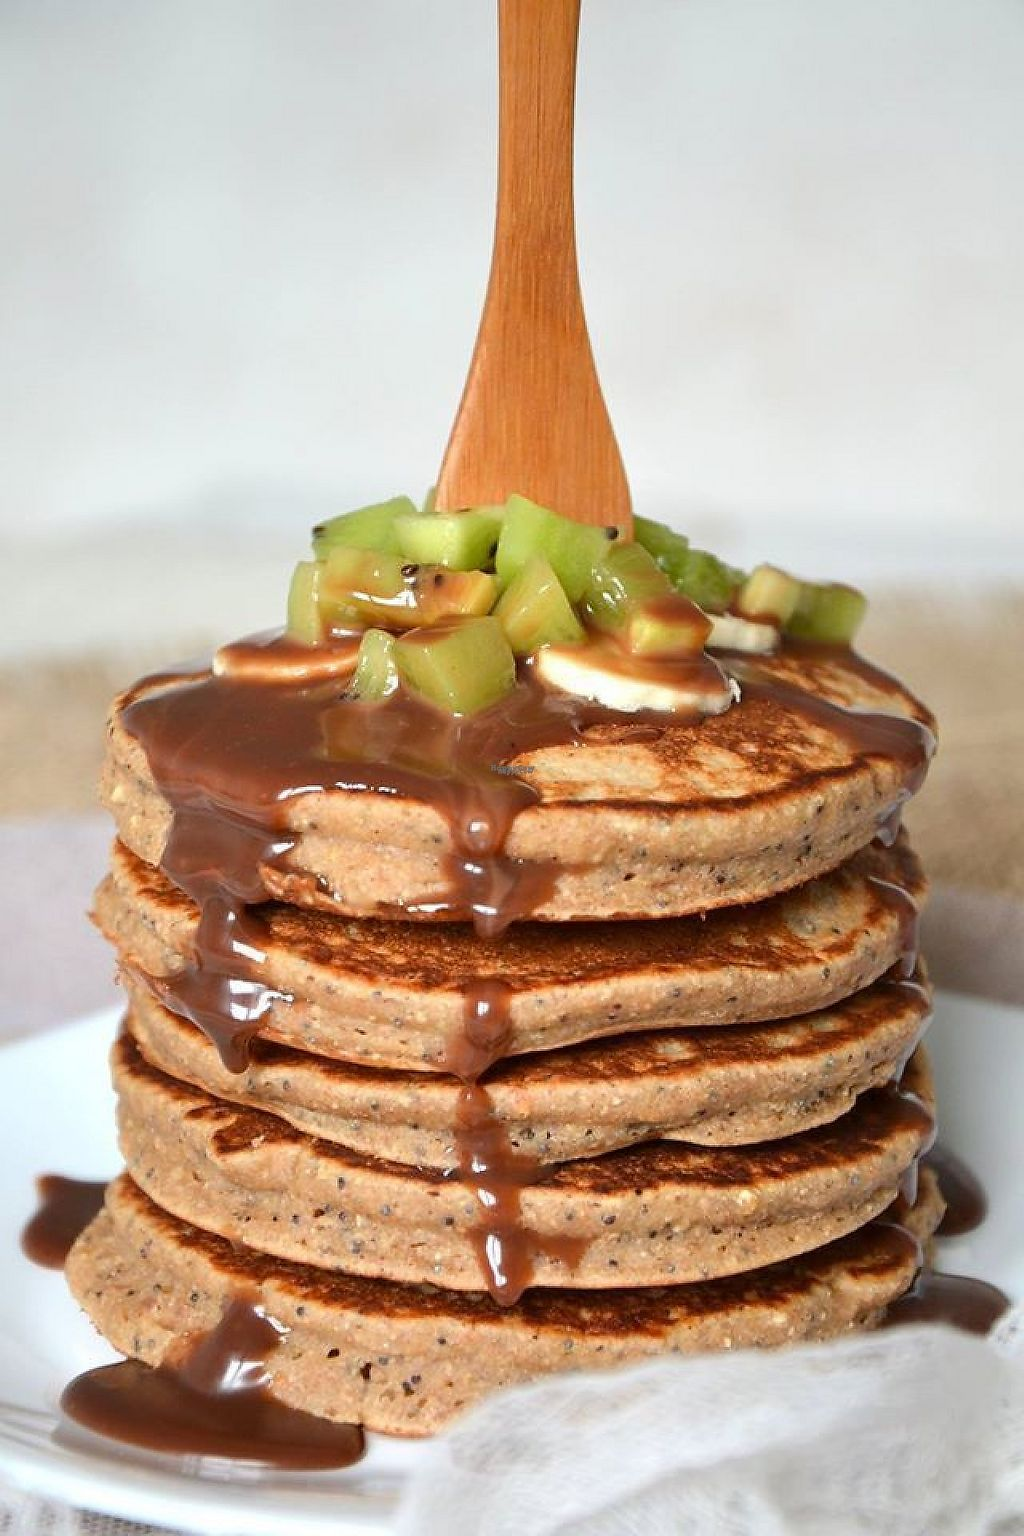 """Photo of La Vie Claire  by <a href=""""/members/profile/community"""">community</a> <br/>vegan pancakes  <br/> February 4, 2017  - <a href='/contact/abuse/image/71972/221845'>Report</a>"""